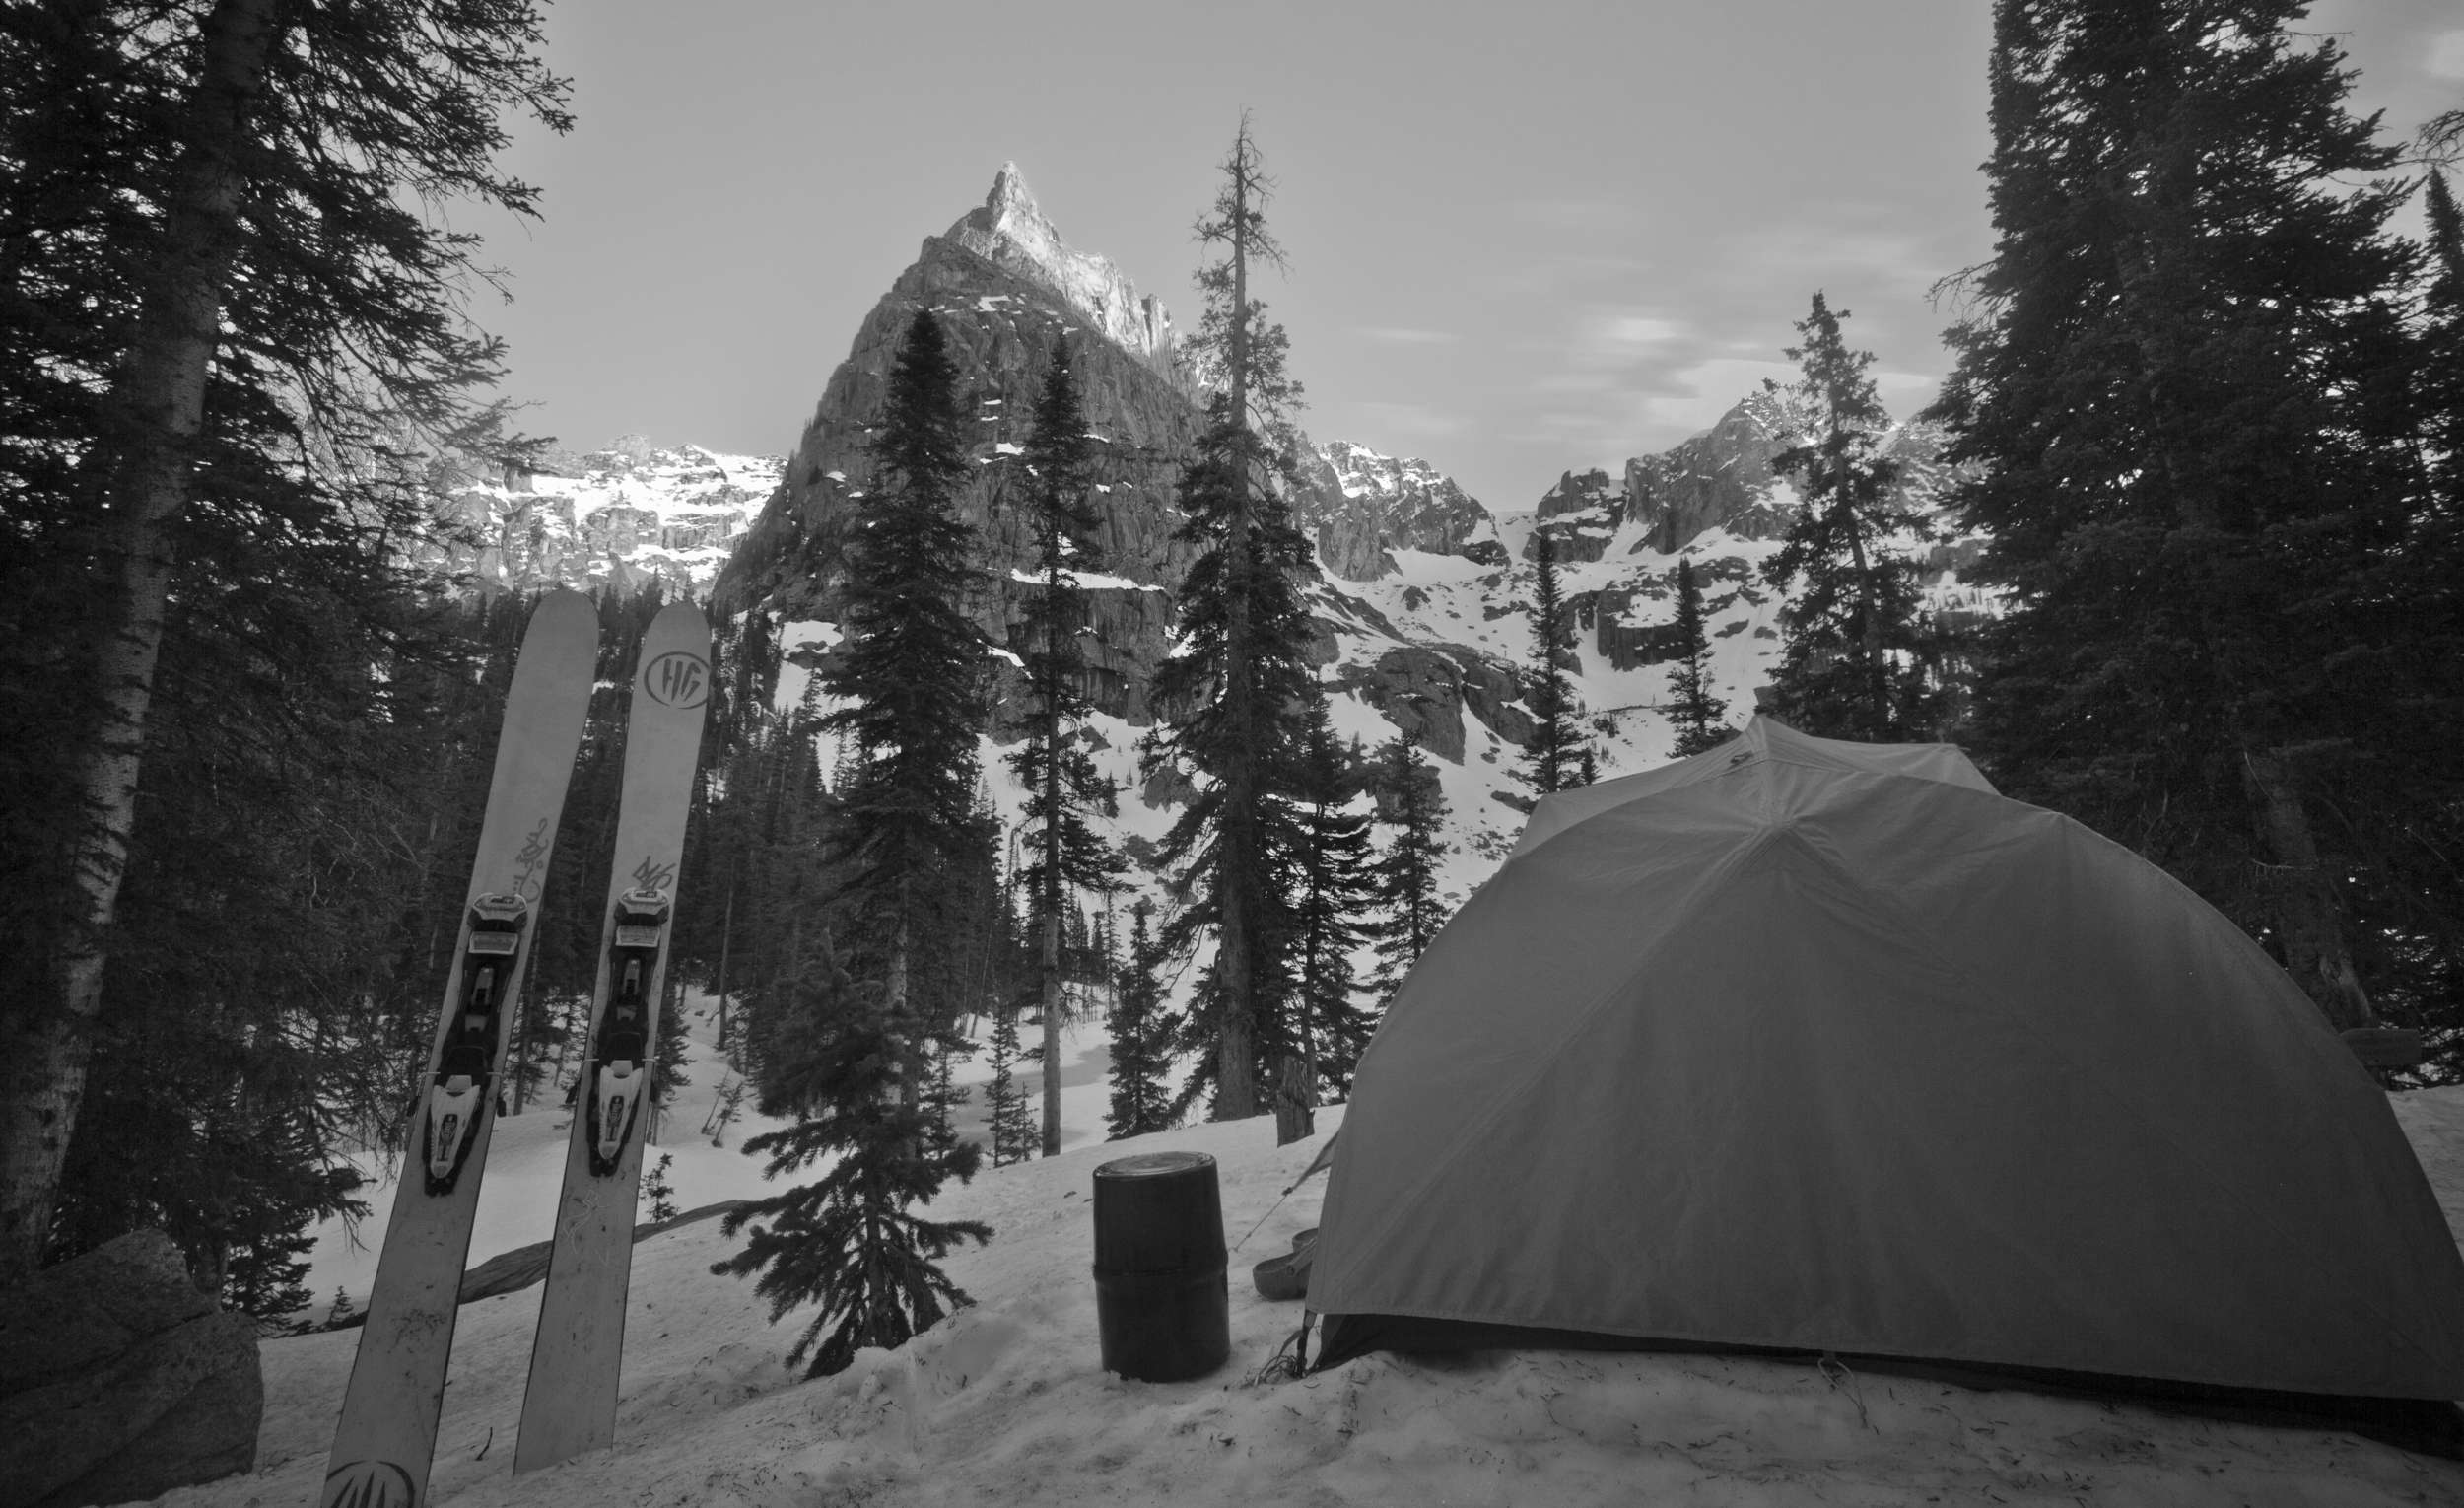 Camping in Lone Eagle Cirque.